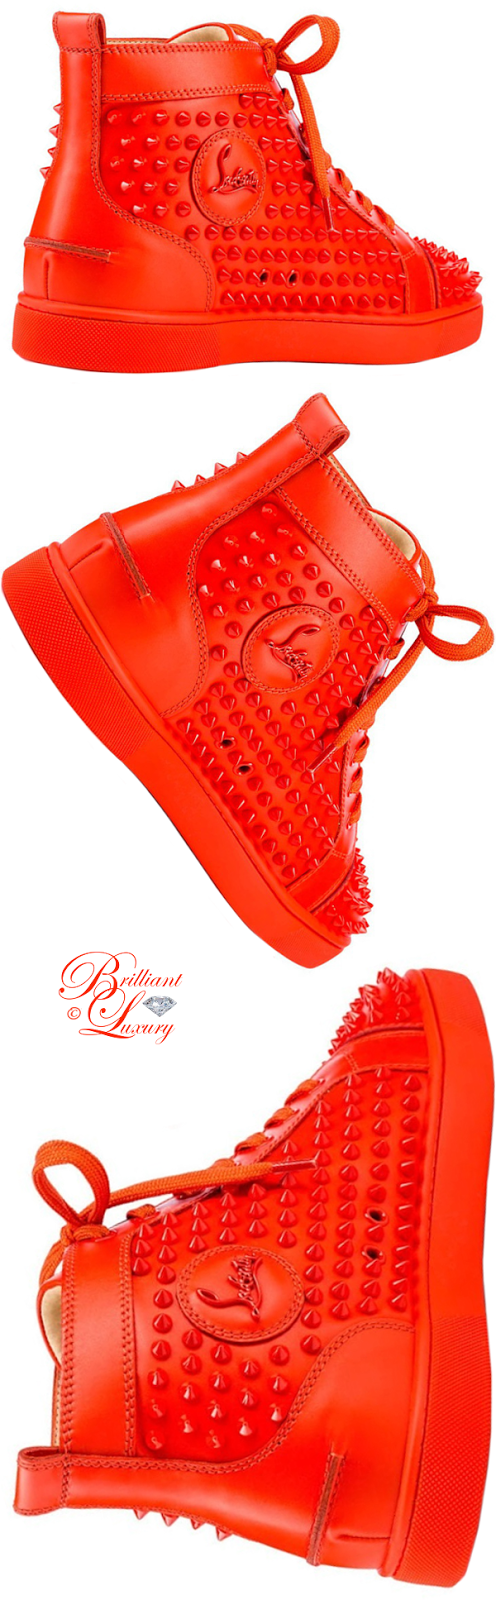 Brilliant Luxury ♦ Christian Louboutin Louis calf spikes sneaker